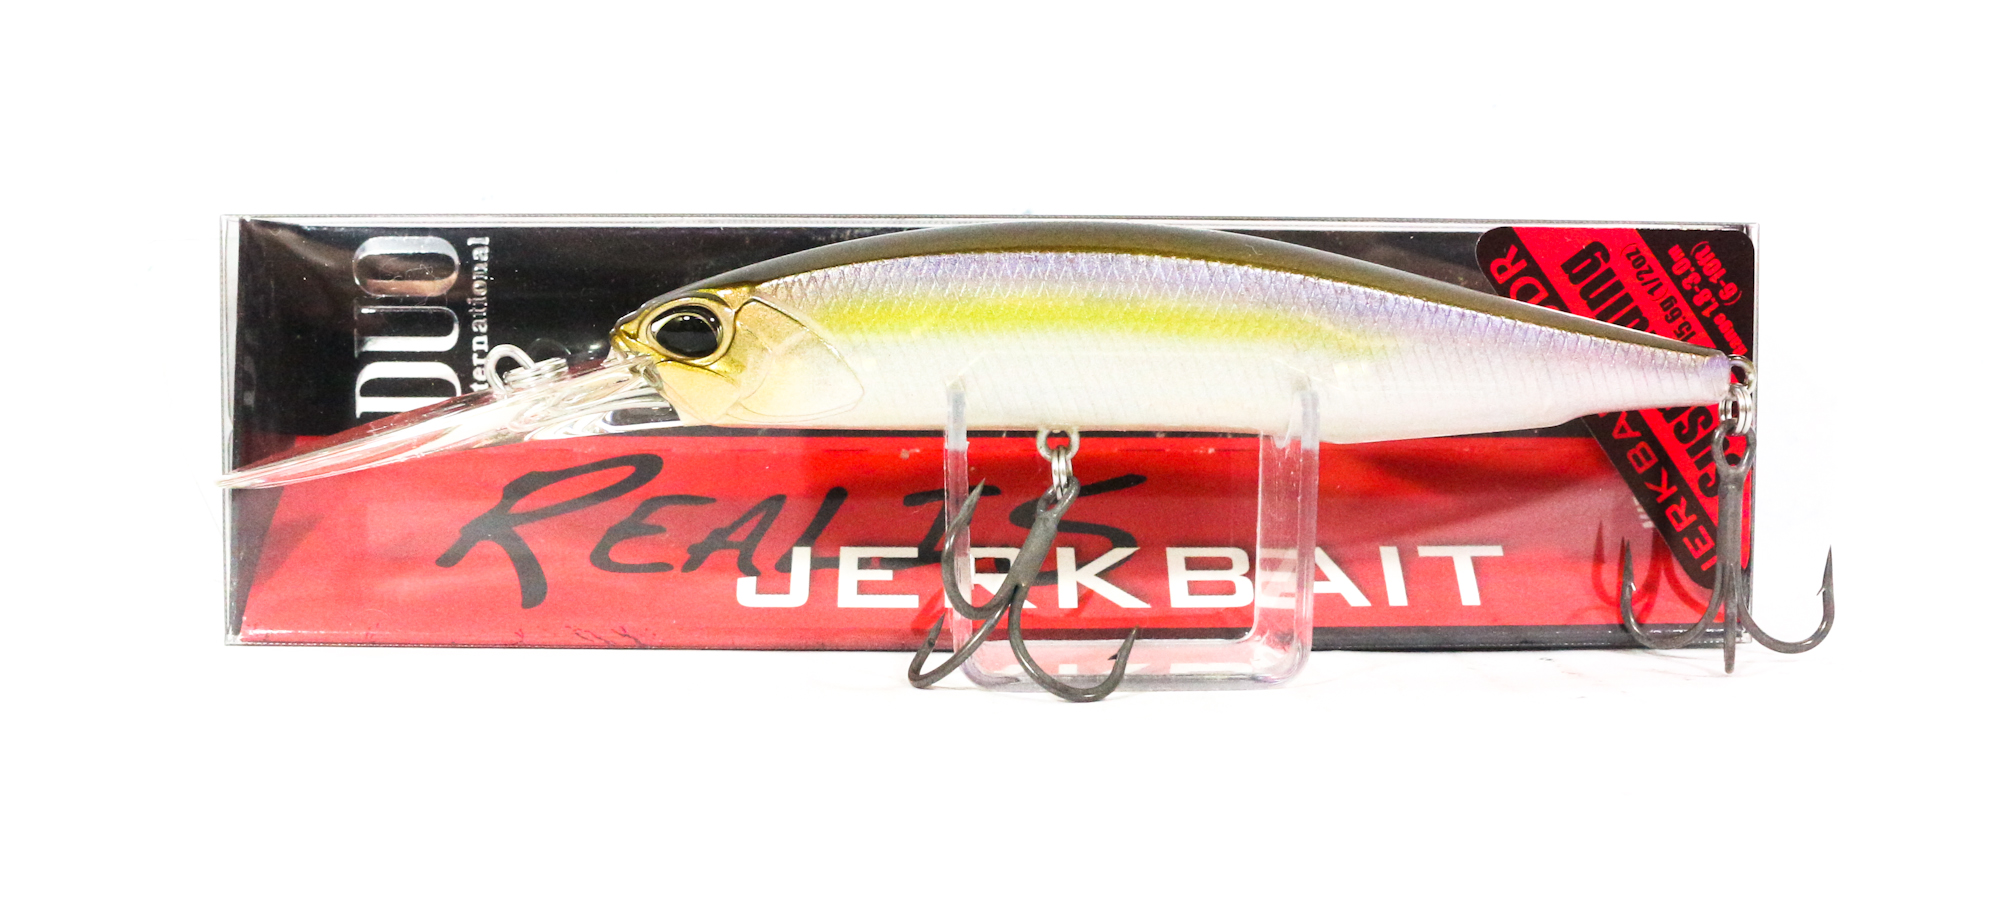 Duo Realis Jerkbait 100 DR Deep Diving Suspend Lure CCC3176 (0565)